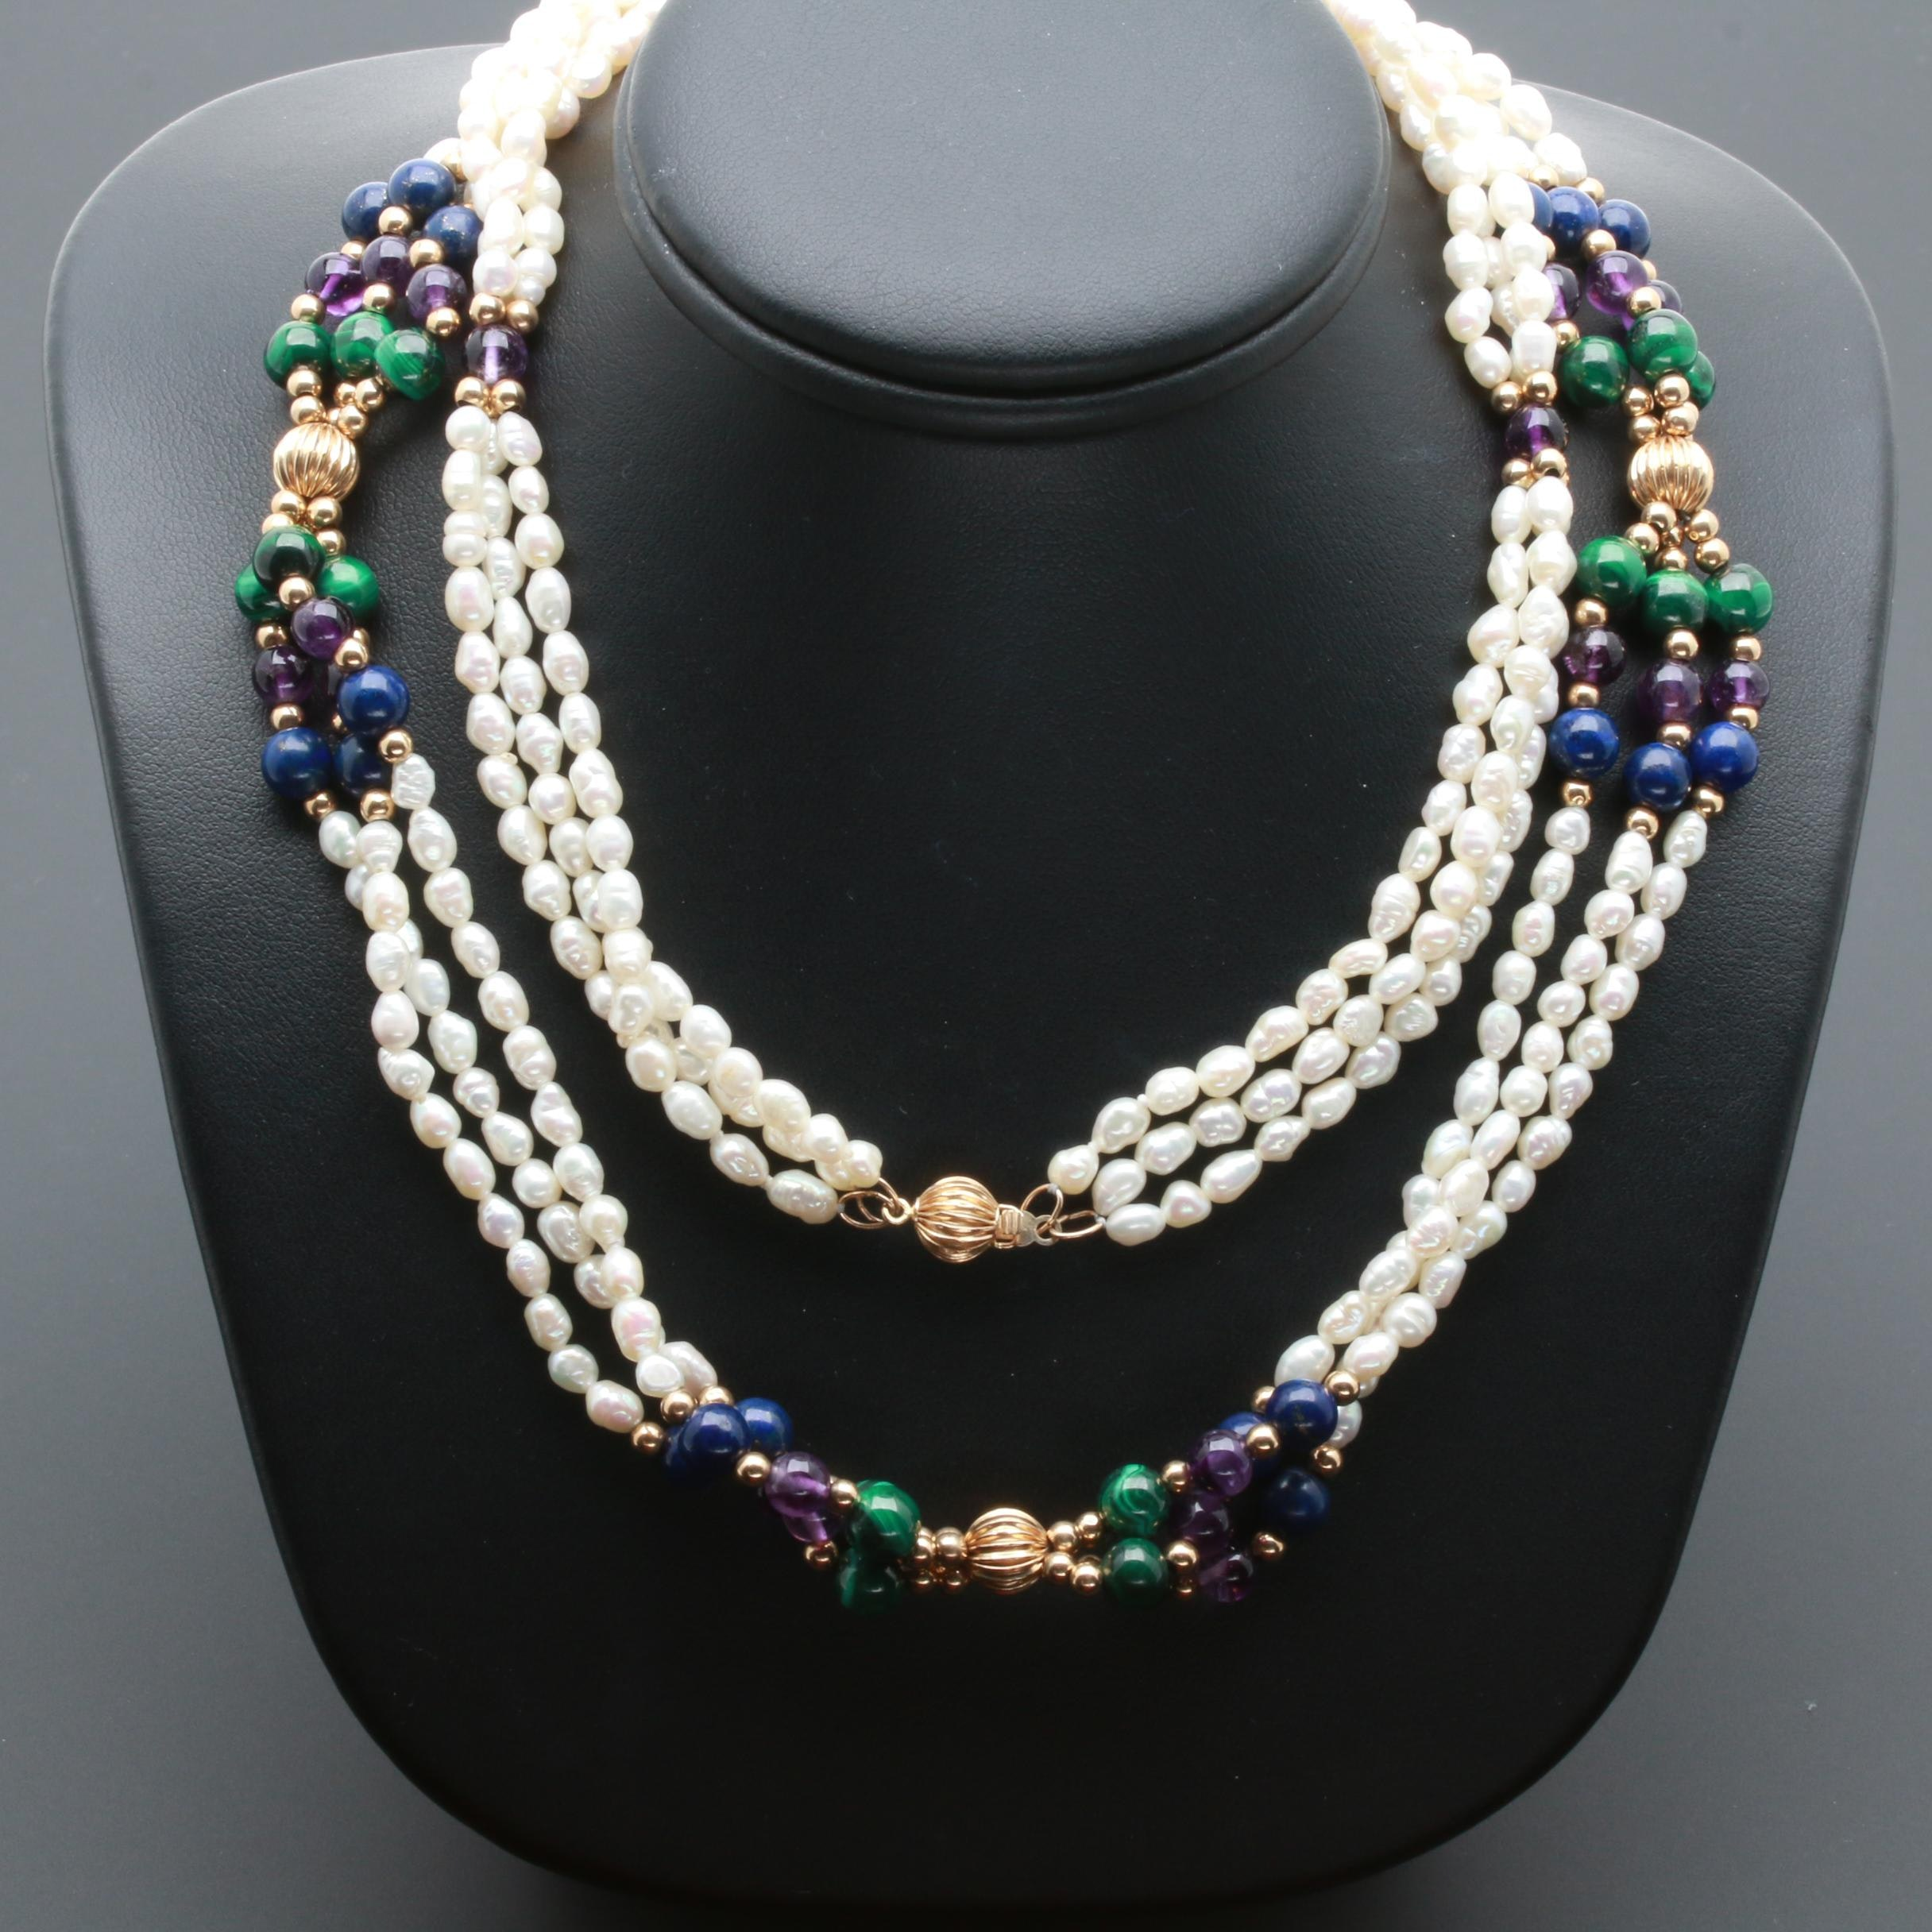 14K Yellow Gold Pearl Necklace with Amethyst, Malachite and Lapis Lazuli